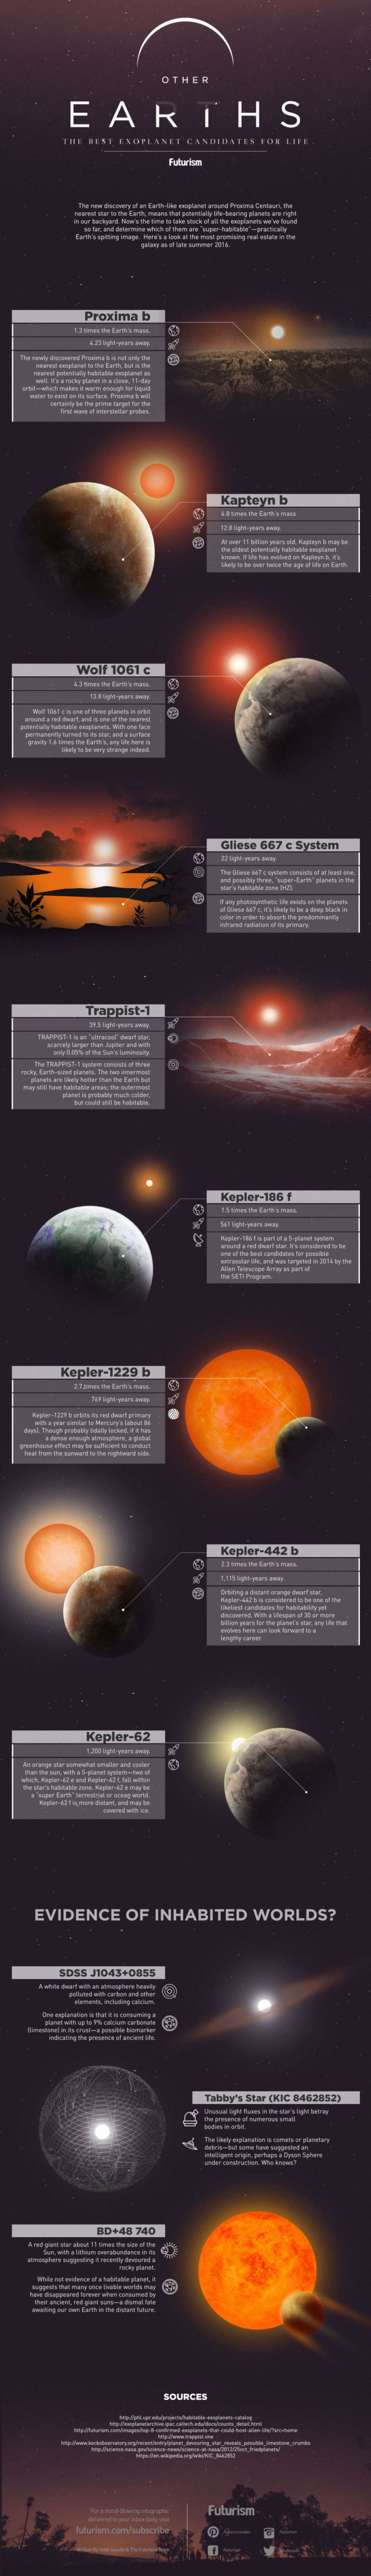 Other EARTHS infographic